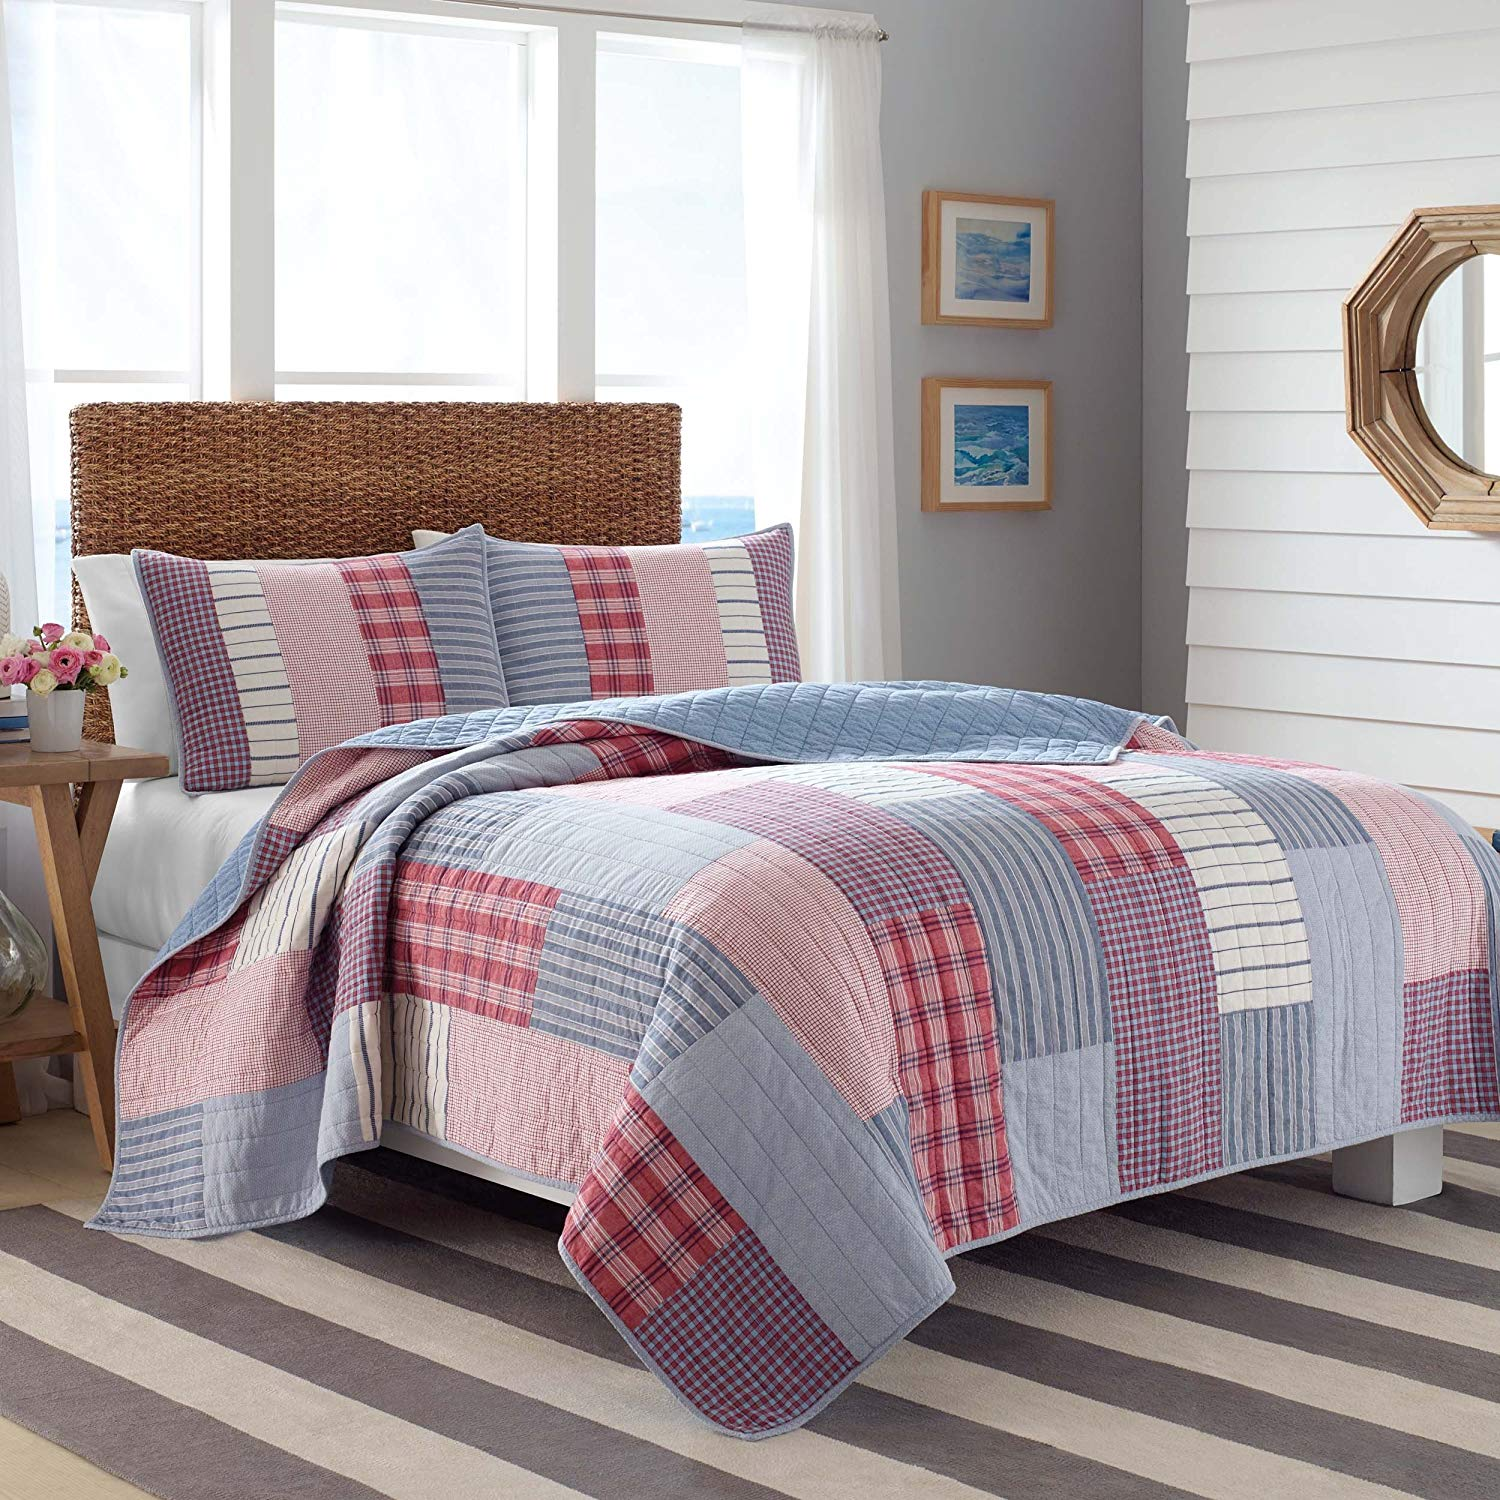 3 Piece Boys Blue Red Plaid Stripe Theme Quilt King Set, Elegance Striped Check Plaided Bedding, Colorful Horizontal Vertical Stripe Lodge Cabin Themed Pattern, Hippy Indie Style, Bright Colors